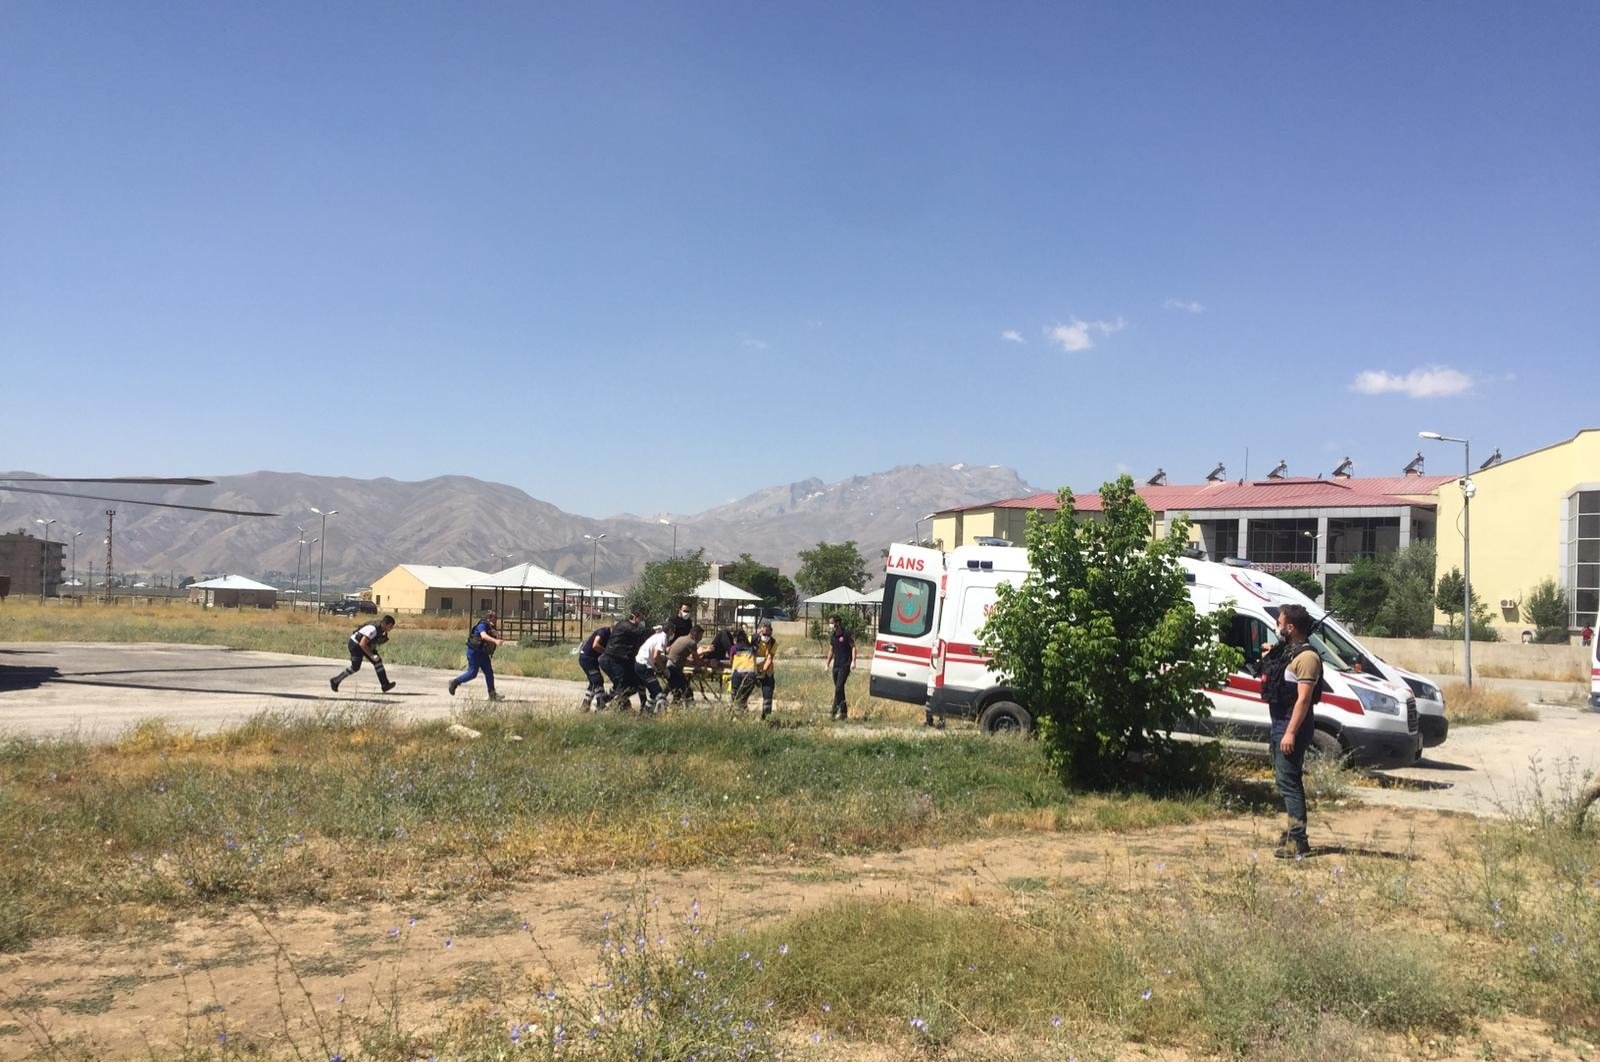 A person injured in a minibus accident is carried to an ambulance in Hakkari province's Yüksekova district, southeastern Turkey, Aug. 3, 2020. (DHA Photo)